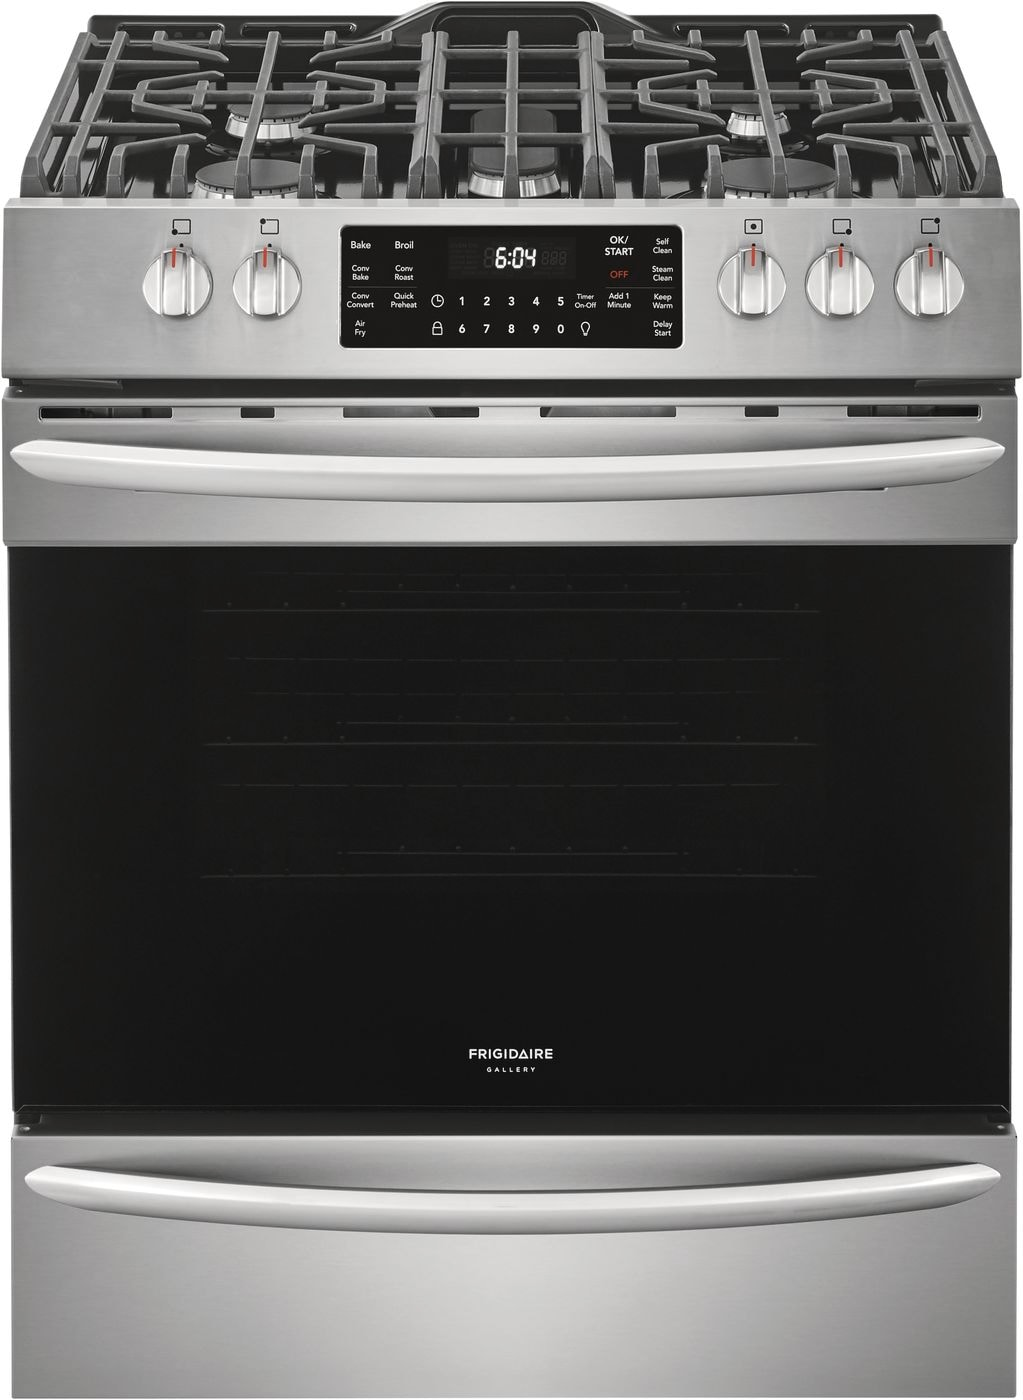 "Model: FGGH3047VF | Frigidaire Gallery 30"" Front Control Gas Range with Air Fry"